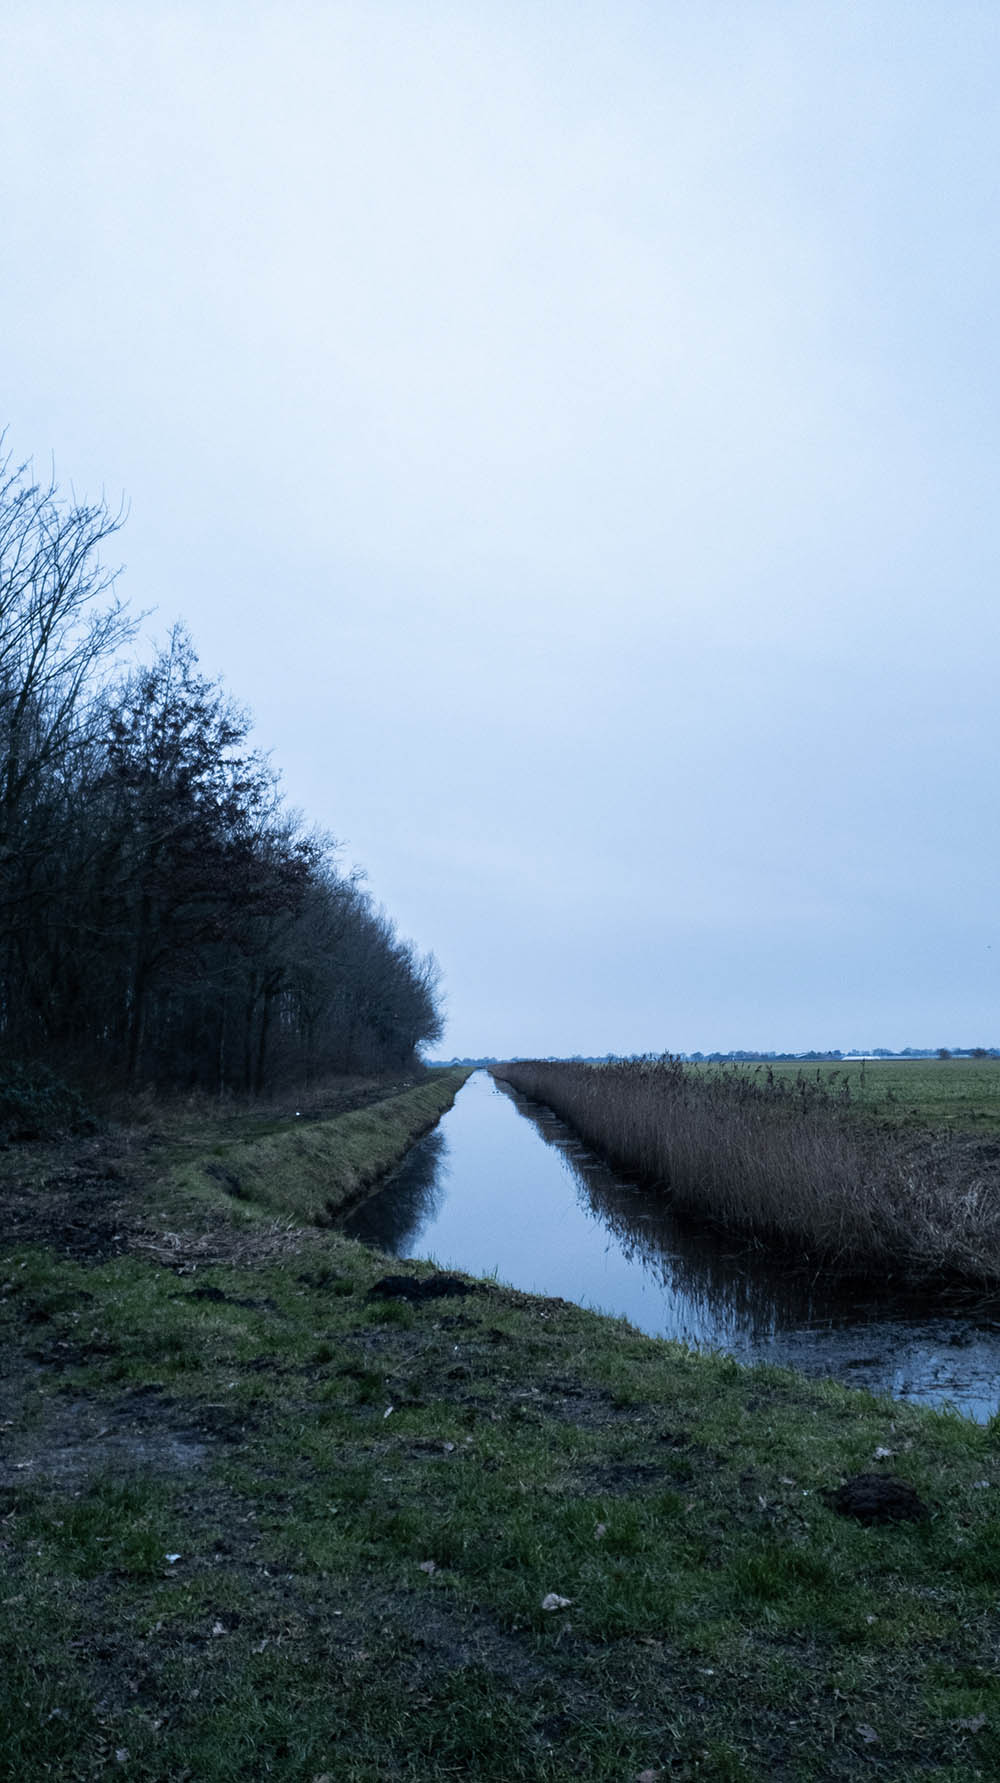 A canal in twilight, with a field on one side and trees on the other.